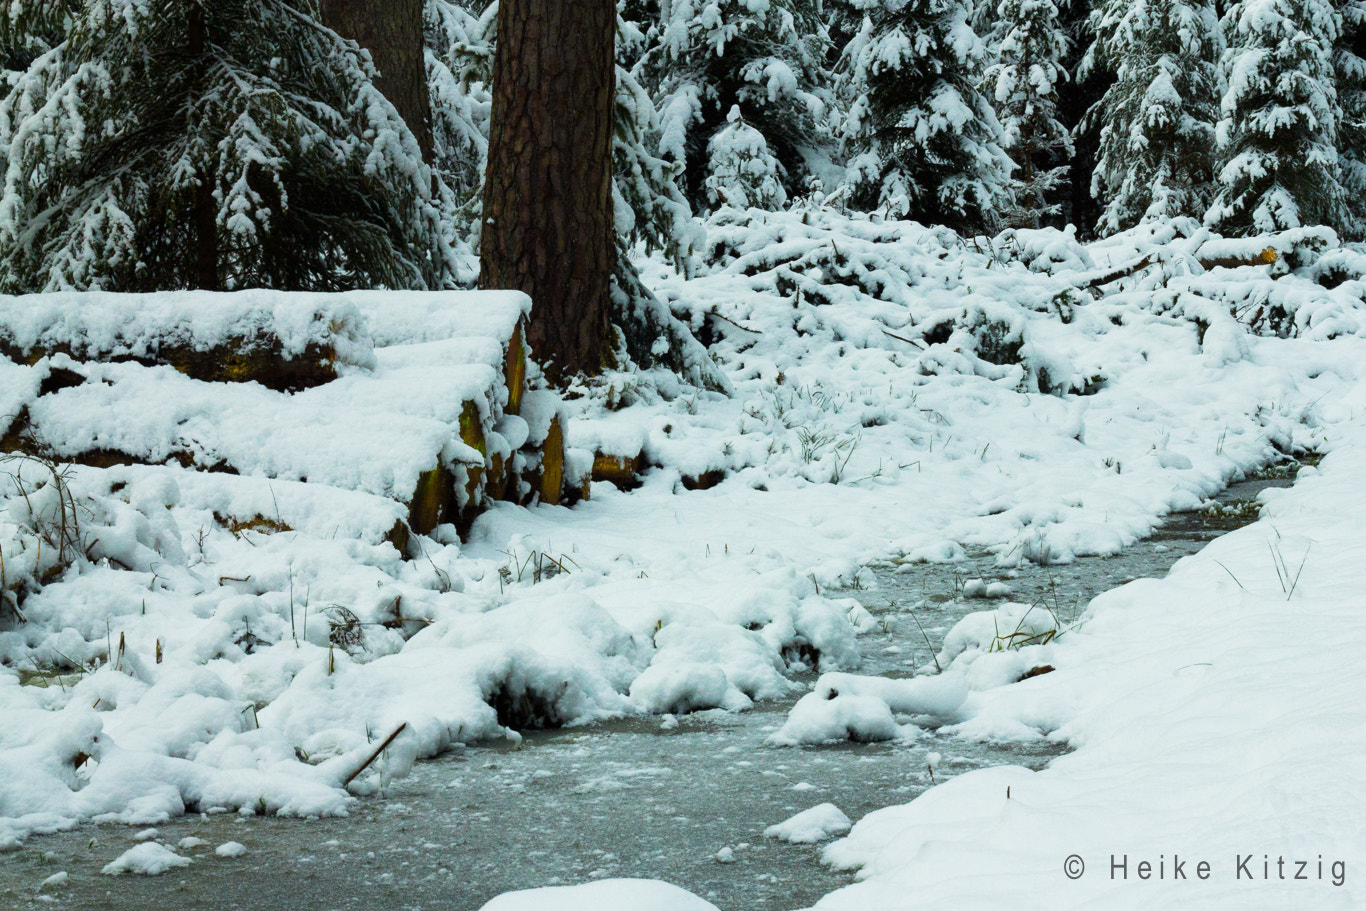 Photograph Winter in the Black Forest Germany by Heike Kitzig on 500px